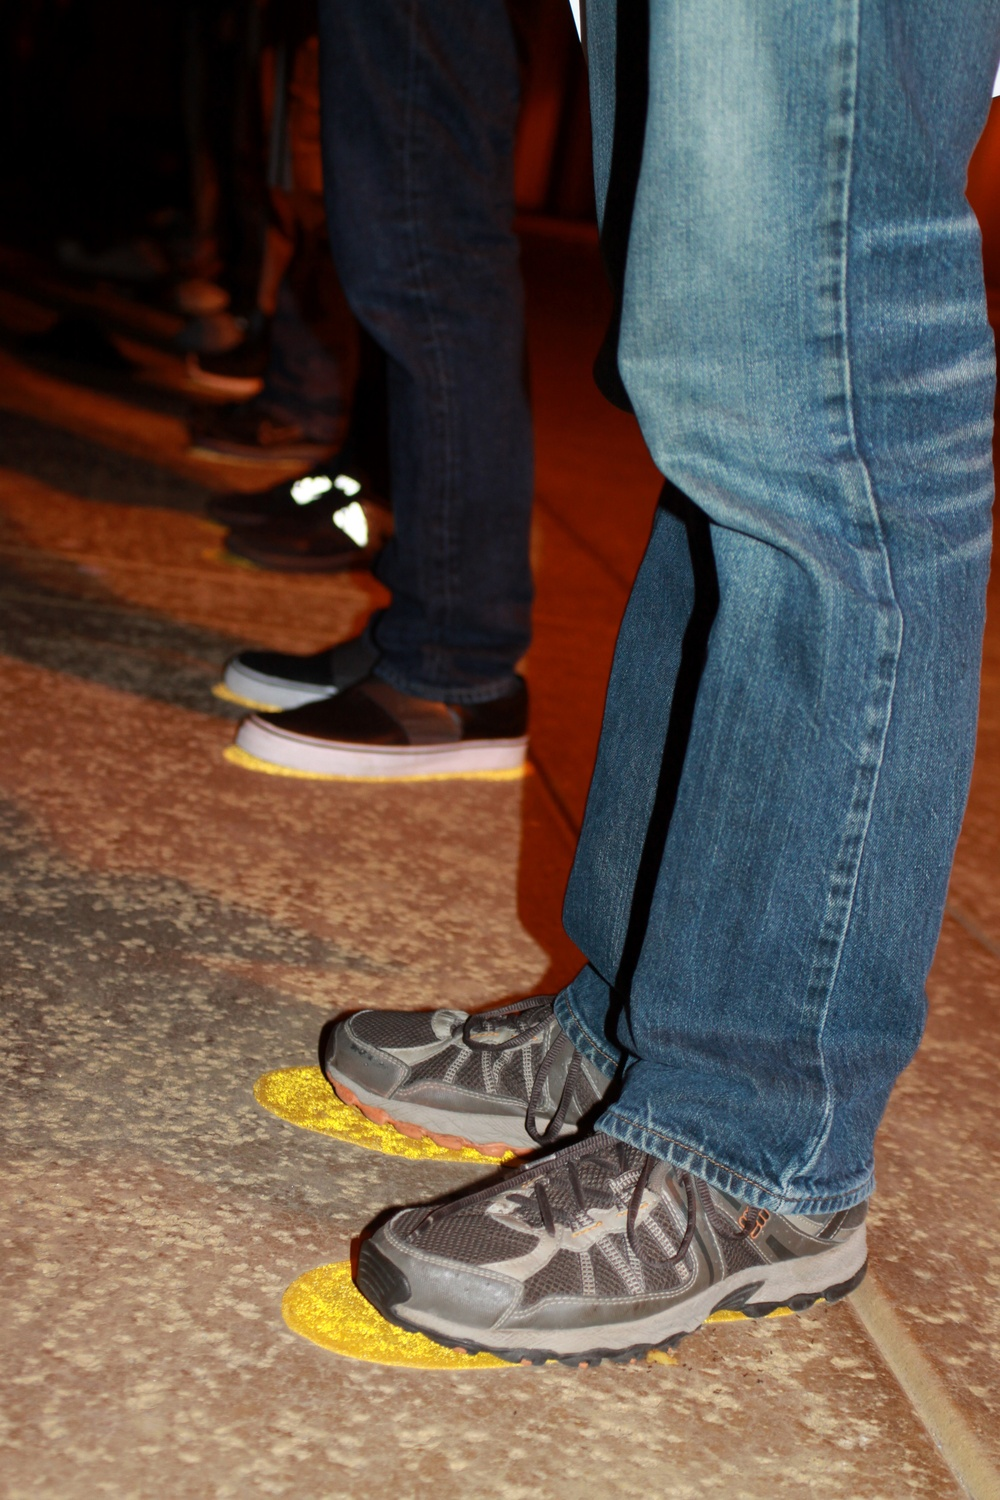 Yellow Footprints: Initial step into recruit training